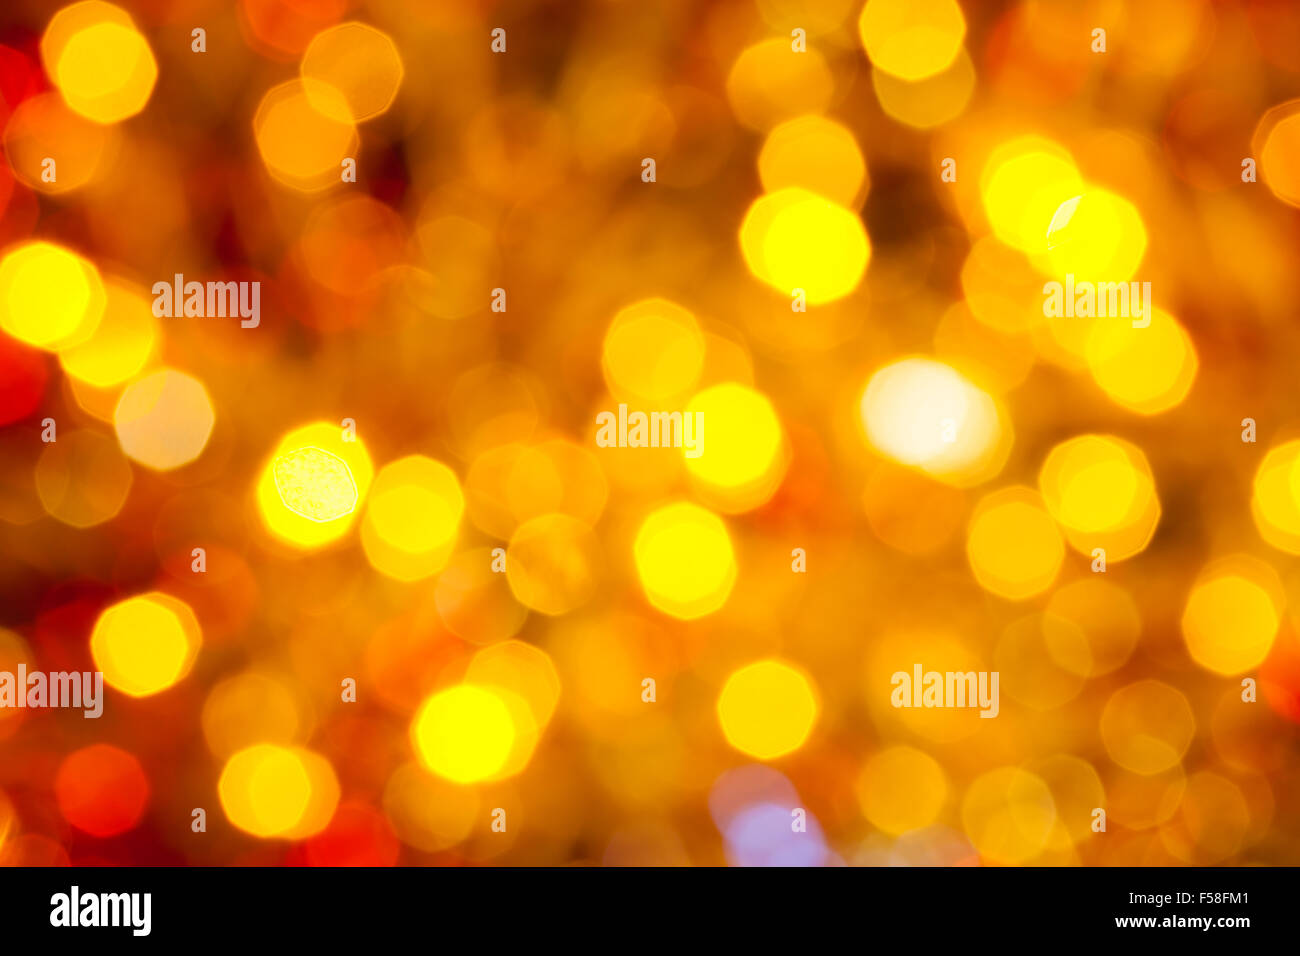 abstract blurred background - brown, yellow and red flickering Christmas lights bokeh of electric garlands on Xmas Stock Photo